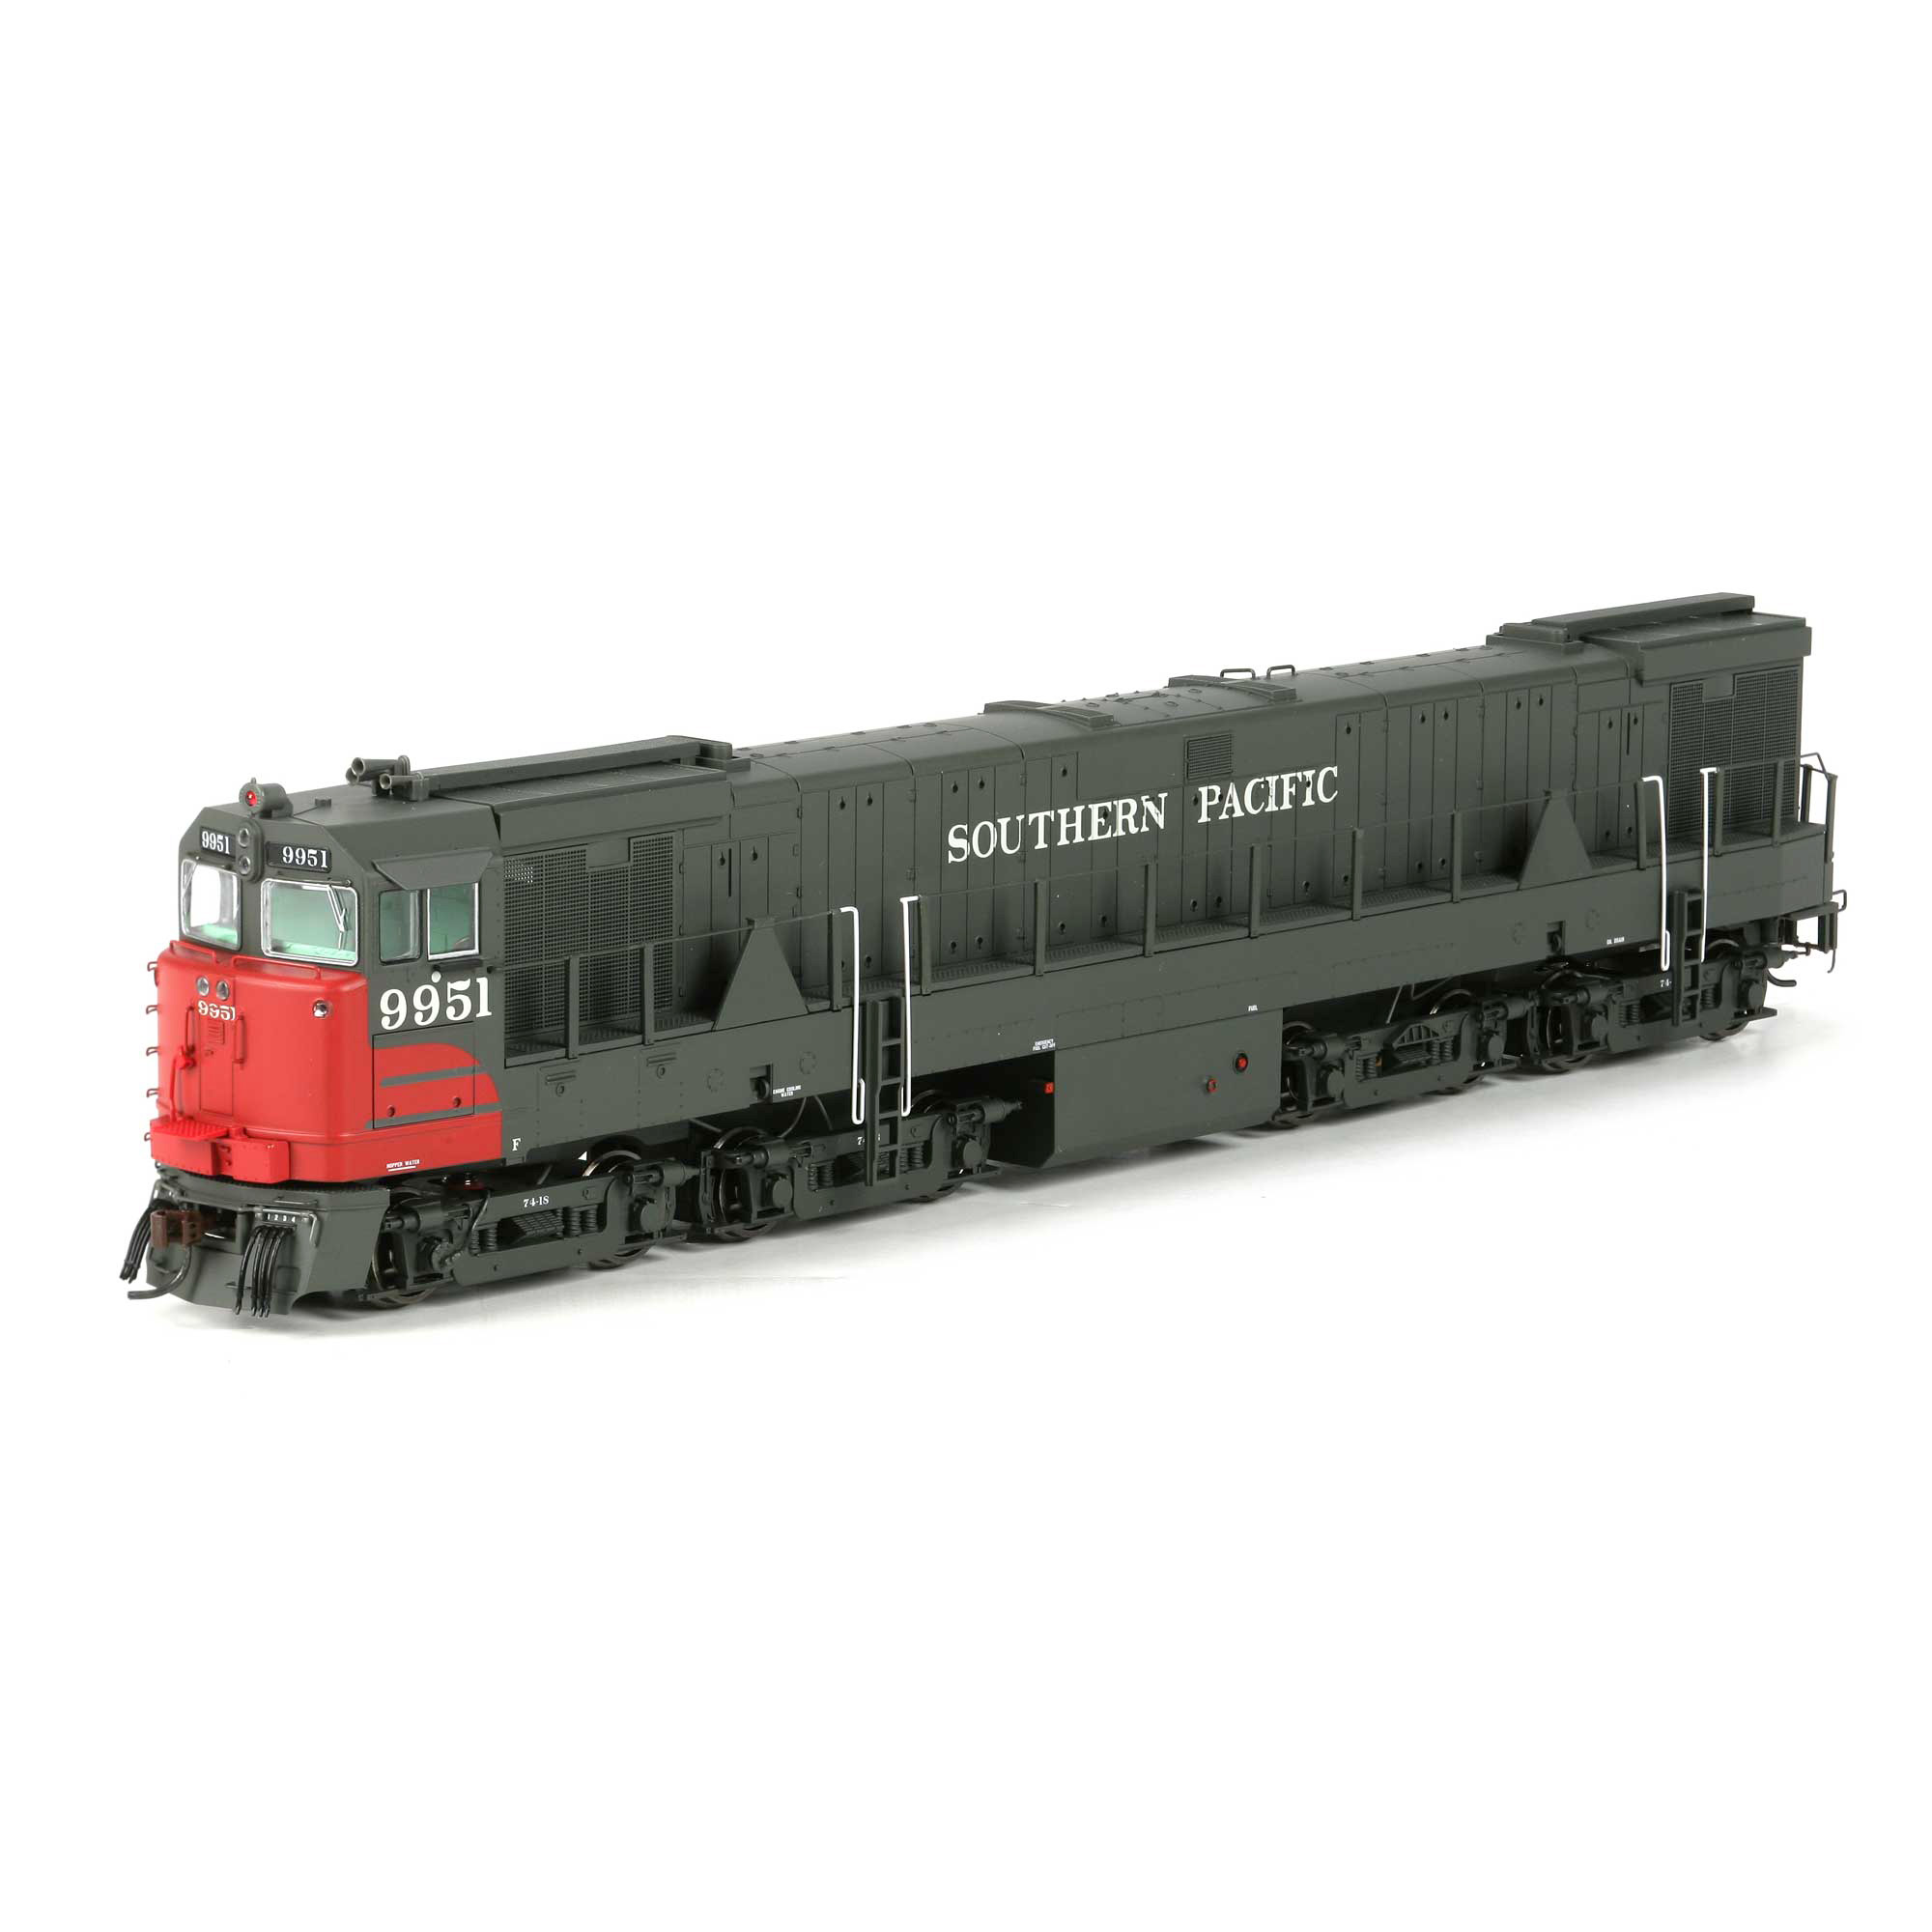 Search Kitchen 20King 20Pro 20 plete 20Food 20Preparation 20Station together with Mad Dog Wiring Diagram furthermore Relé de vía moreover Tlt 500251 besides Wiring A Turntable For Dcc. on wiring a dc model train motor